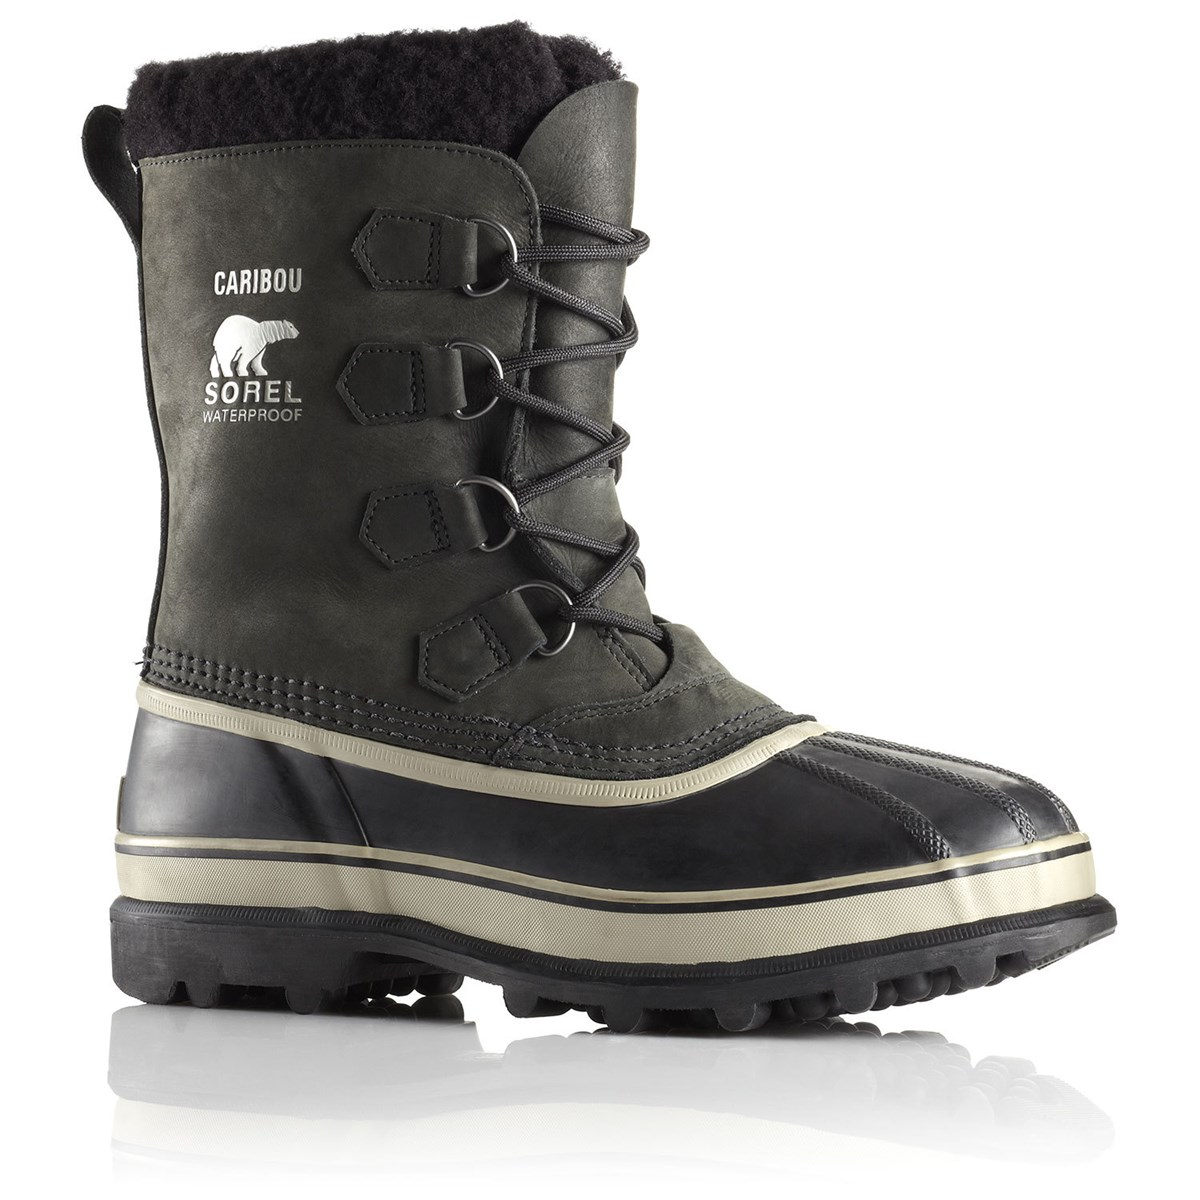 2396610b100 Sorel Caribou Mens Snow Boots Black Tusk. 0 (Be the first to add a review!)